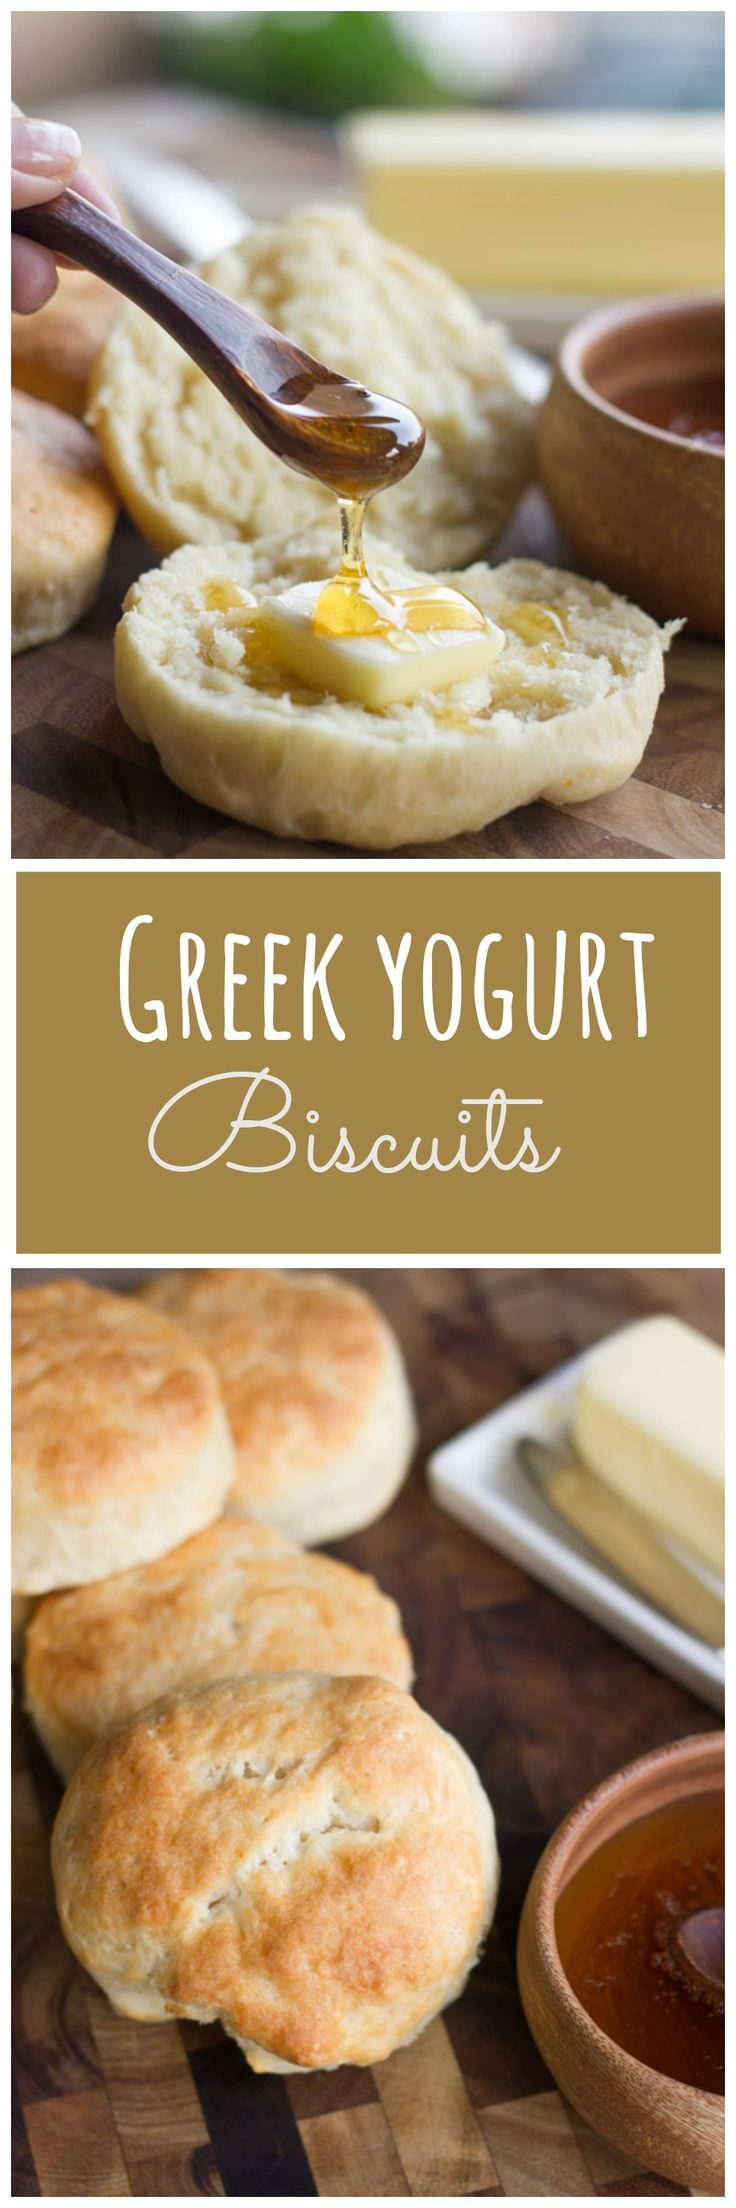 Soft, fluffy biscuits made a little healthier!